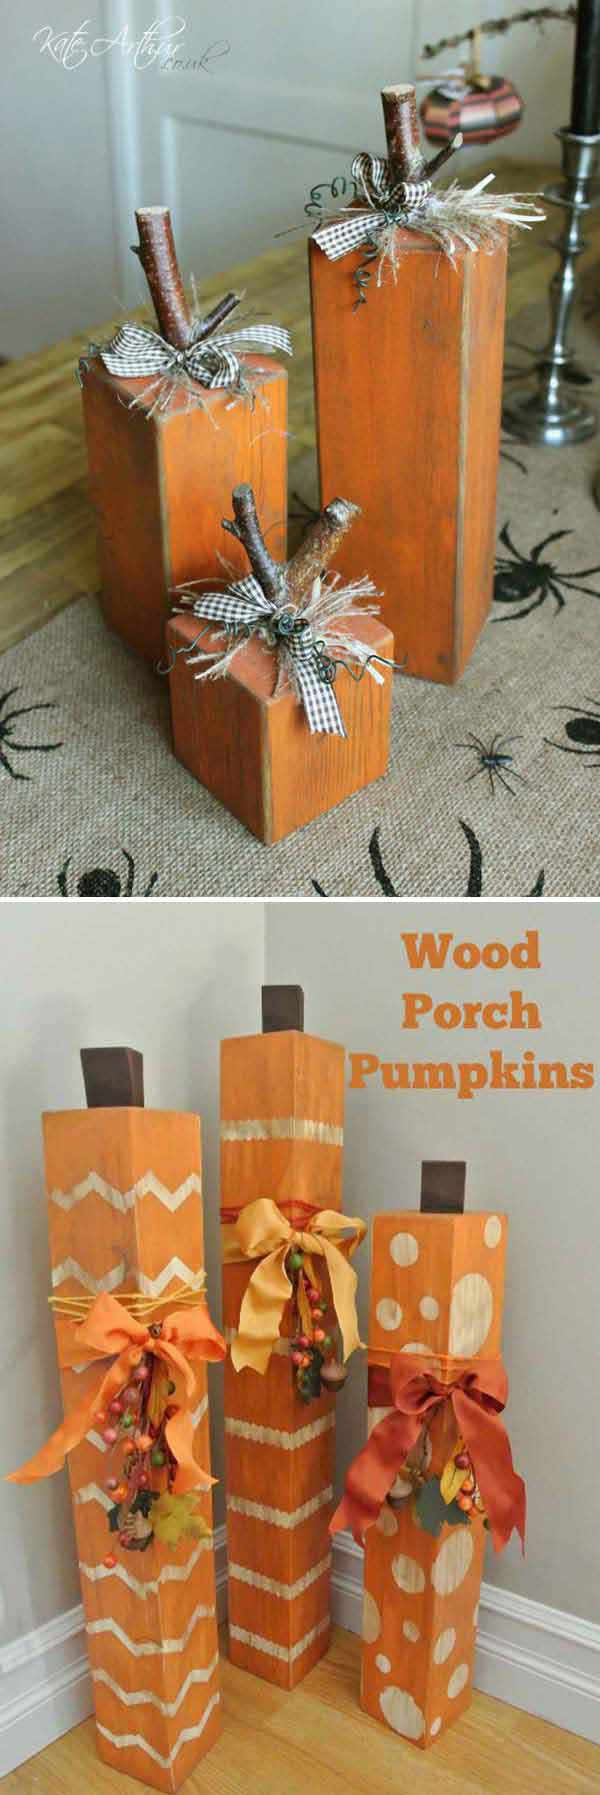 20 halloween decorations crafted from reclaimed wood for How to make homemade halloween decorations